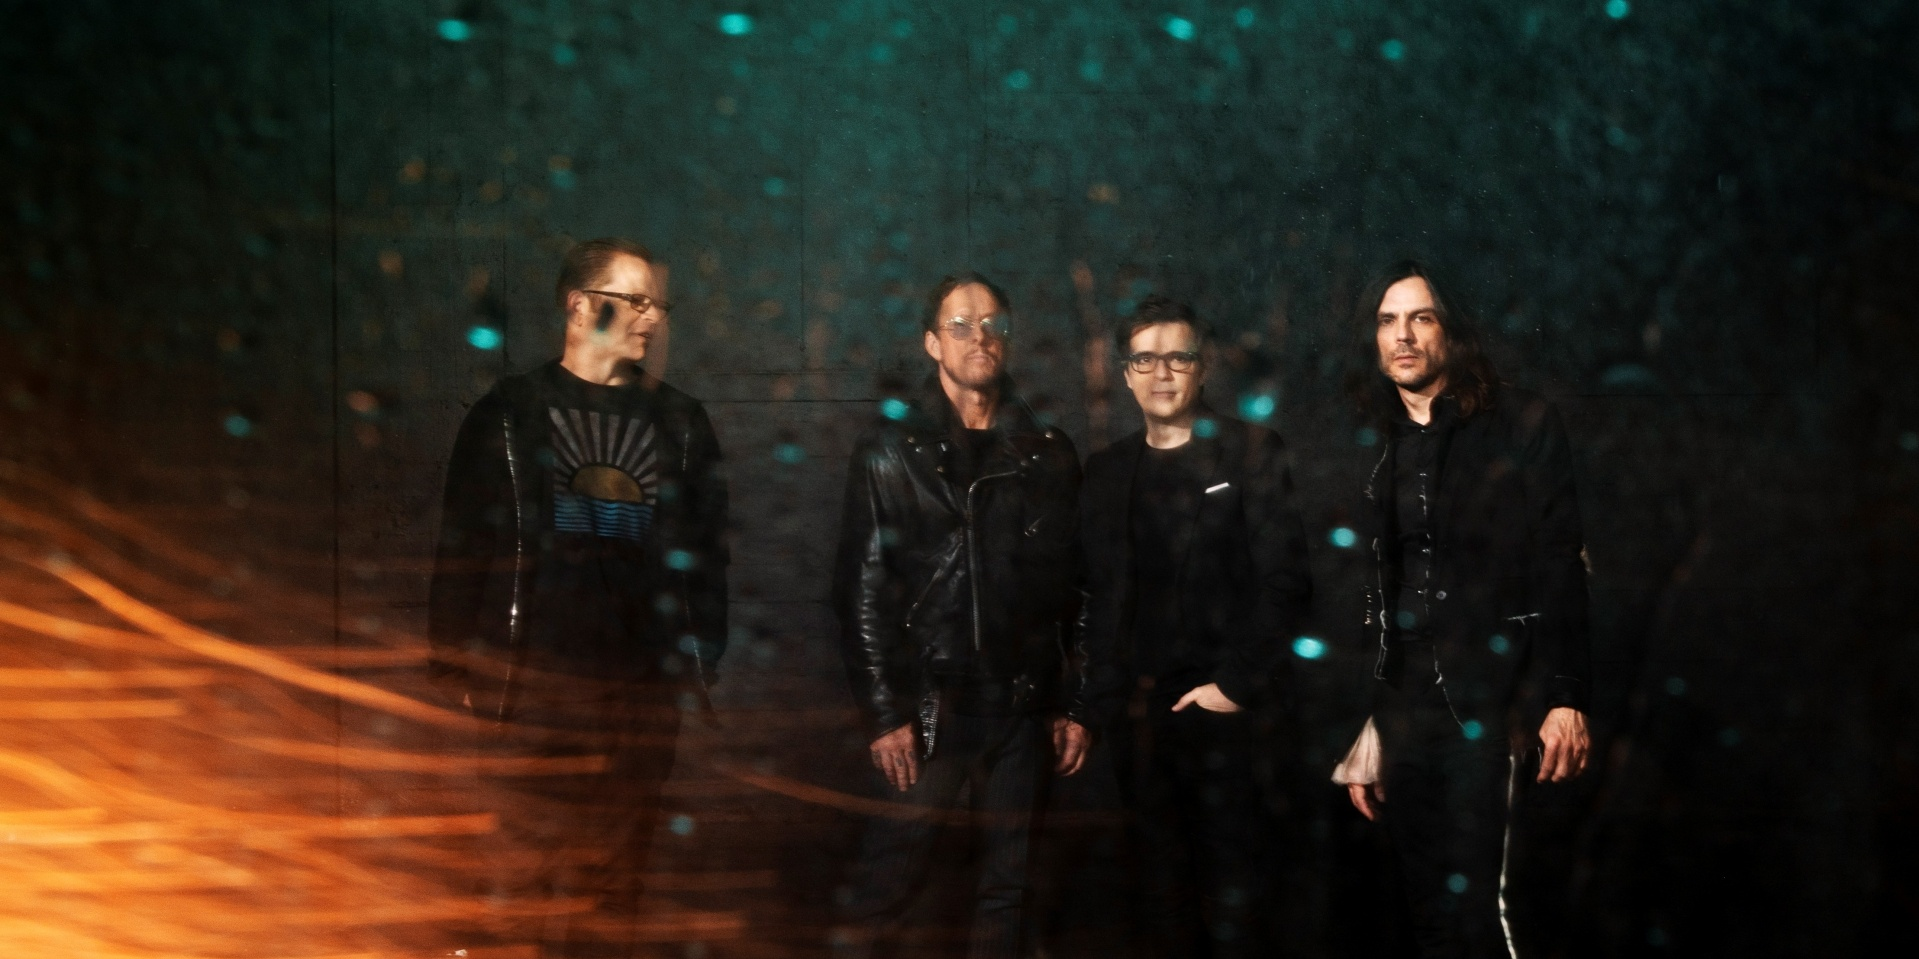 Weezer announce new album Van Weezer and share new song